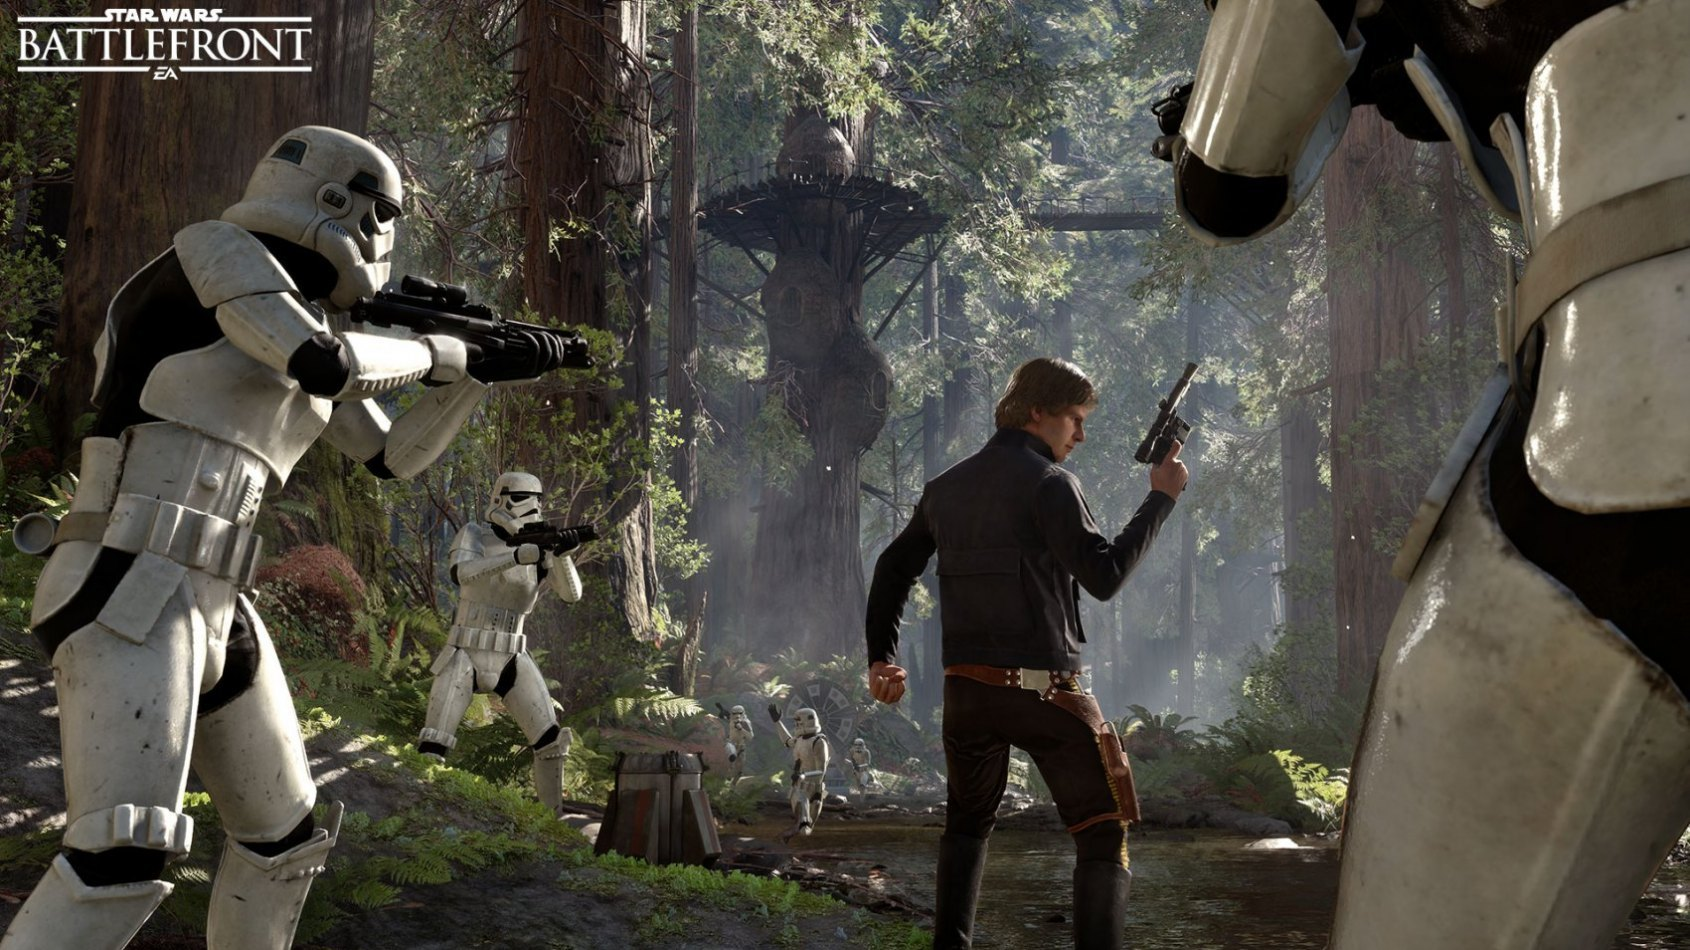 Star Wars Battlefront : Un mode solo déjà disponible ?